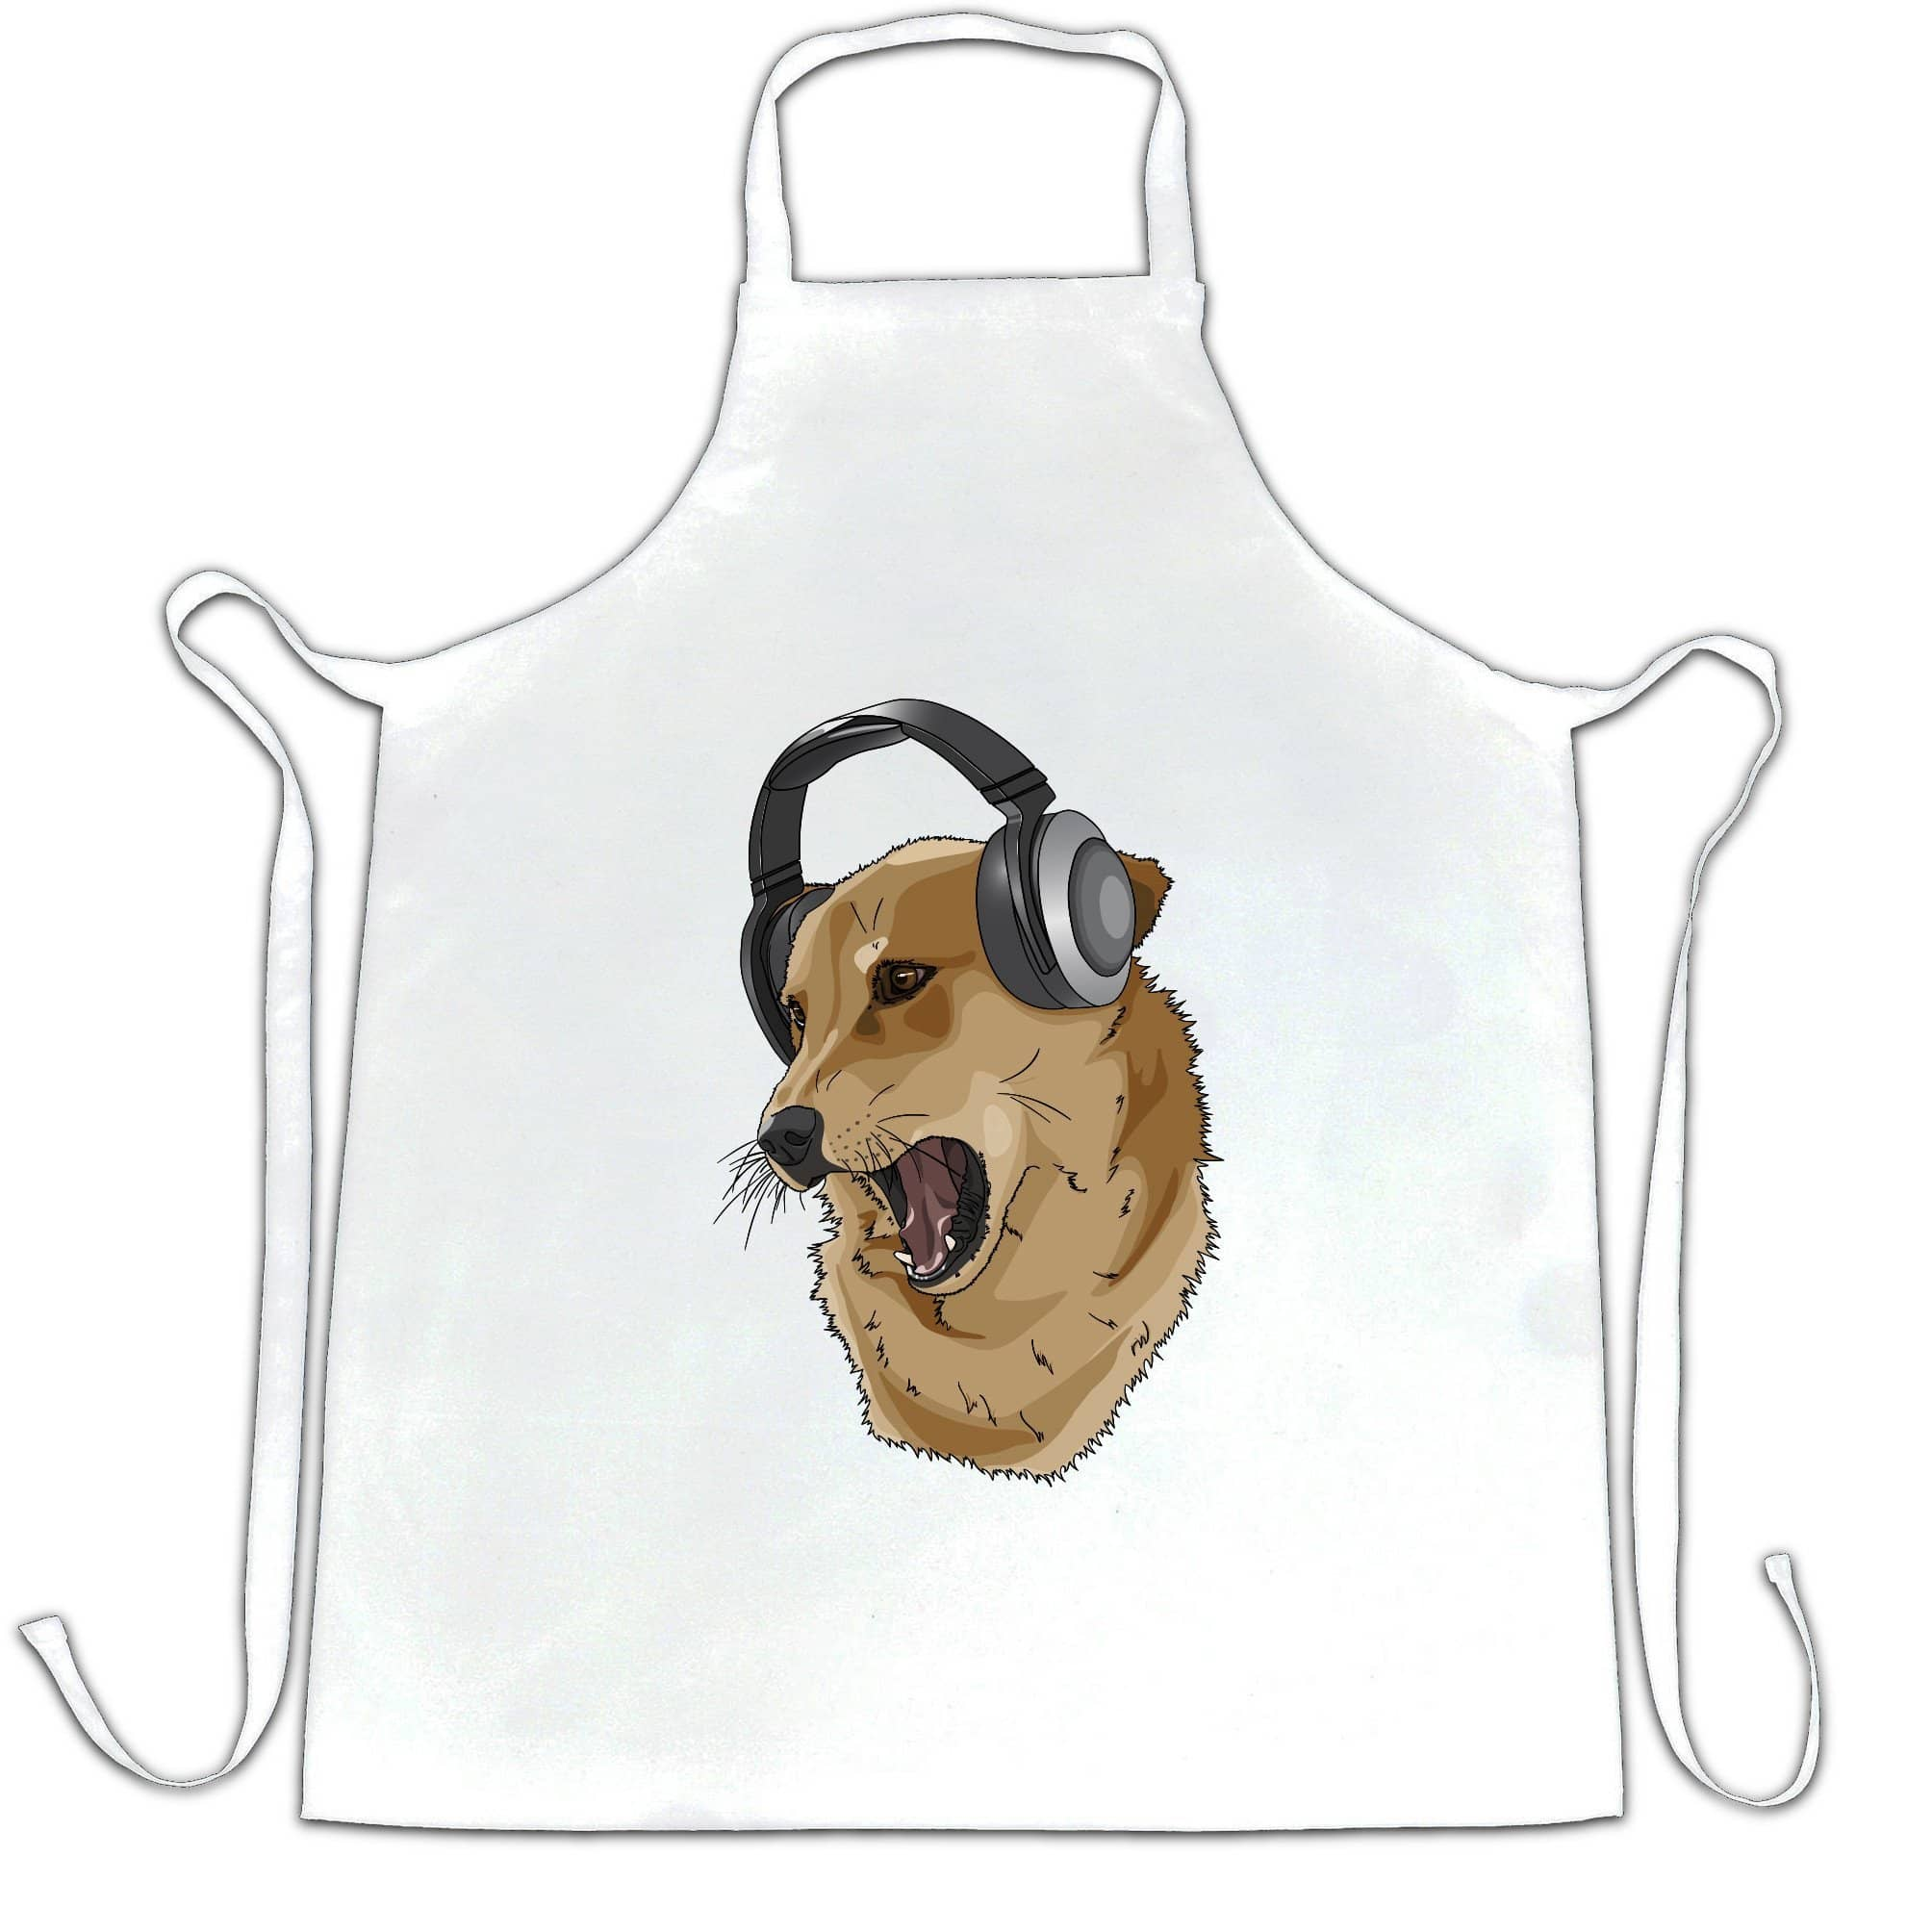 Cute Music Chef's Apron Shibe Dog Wearing Headphones